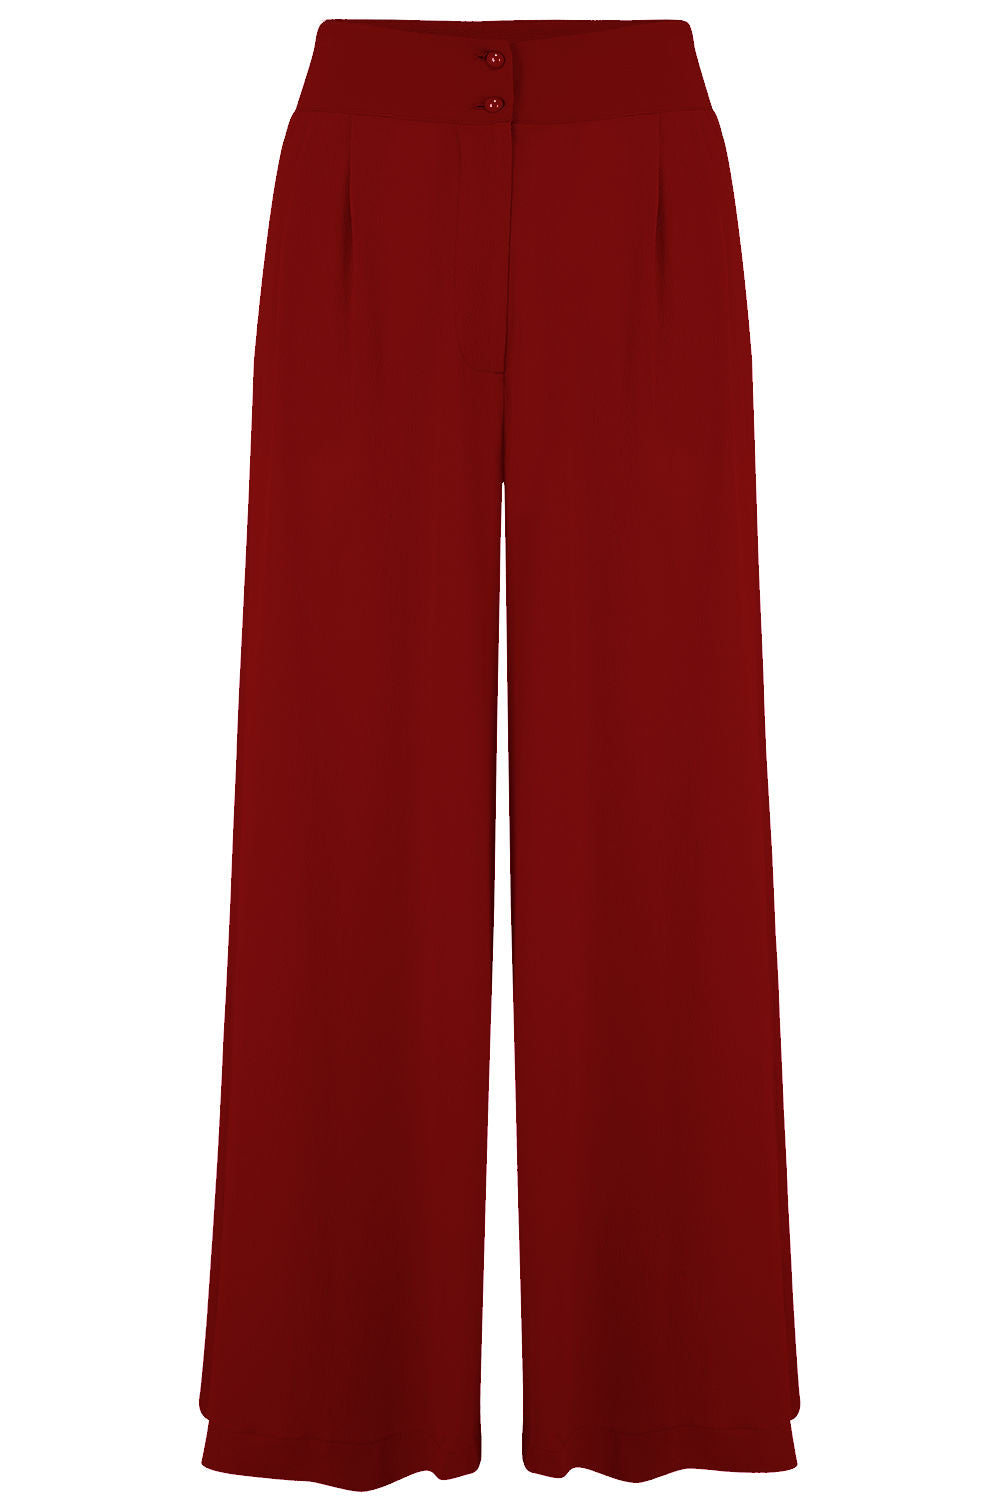 "Rock n Romance The ""Sophia"" Plazzo Wide Leg Trousers in Wine, Easy To Wear Vintage Inspired Style - RocknRomance Clothing"